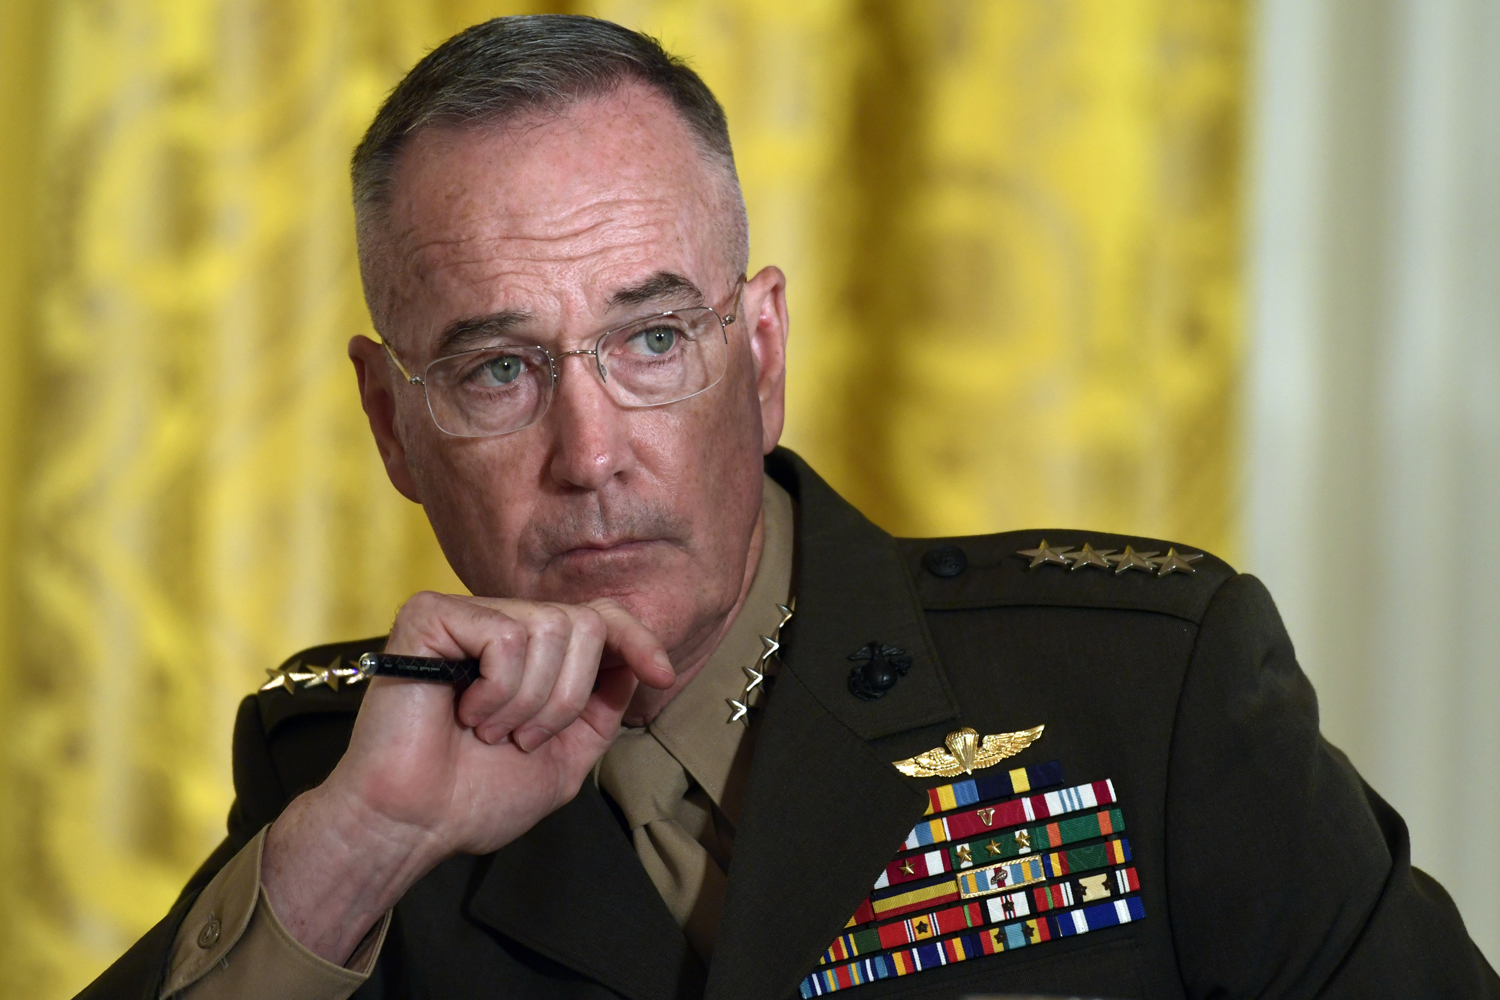 Gen. Joseph Dunford, the chairman of the Joint Chiefs of Staff, listens during the National Space Council meeting in the East Room of the White House in Washington, Monday, June 18, 2018. President Donald Trump has tasked the Defense Department to begin the process of establishing the 'Space Force' as the sixth branch of the U.S. armed forces. He said the new branch's creation will be overseen by Dunford. (Susan Walsh/AP)